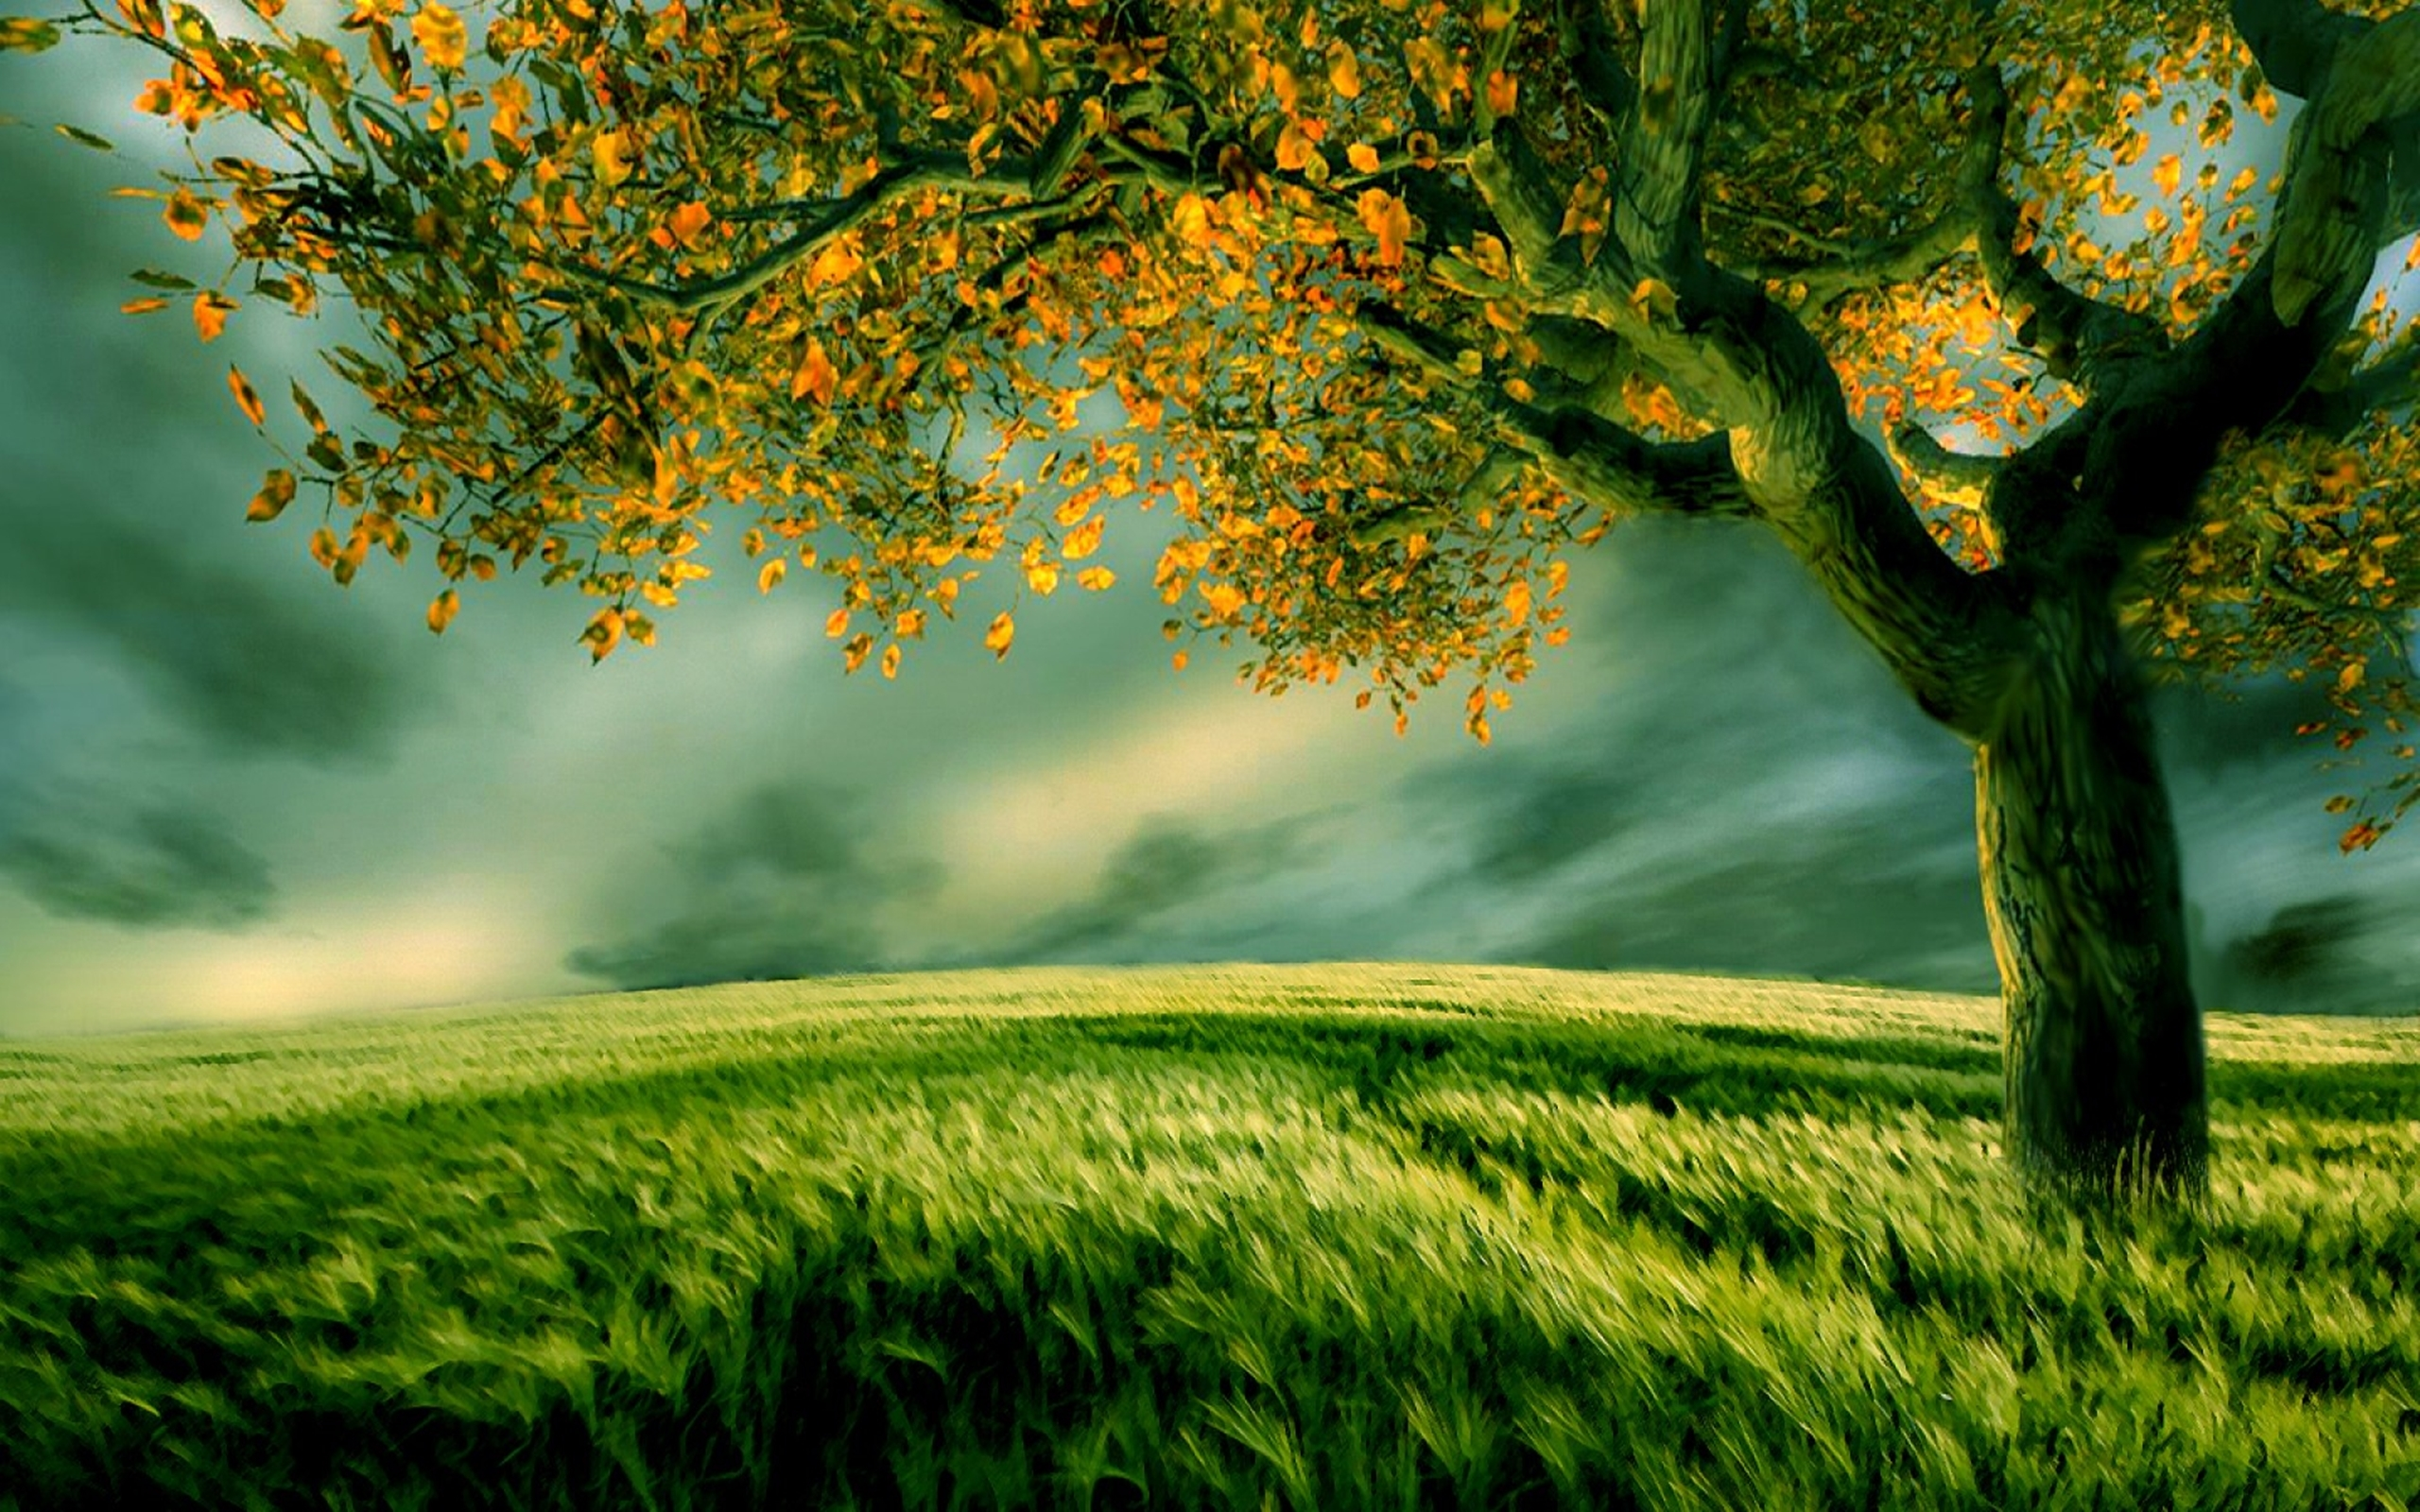 Artistic Vast Field Wallpaper